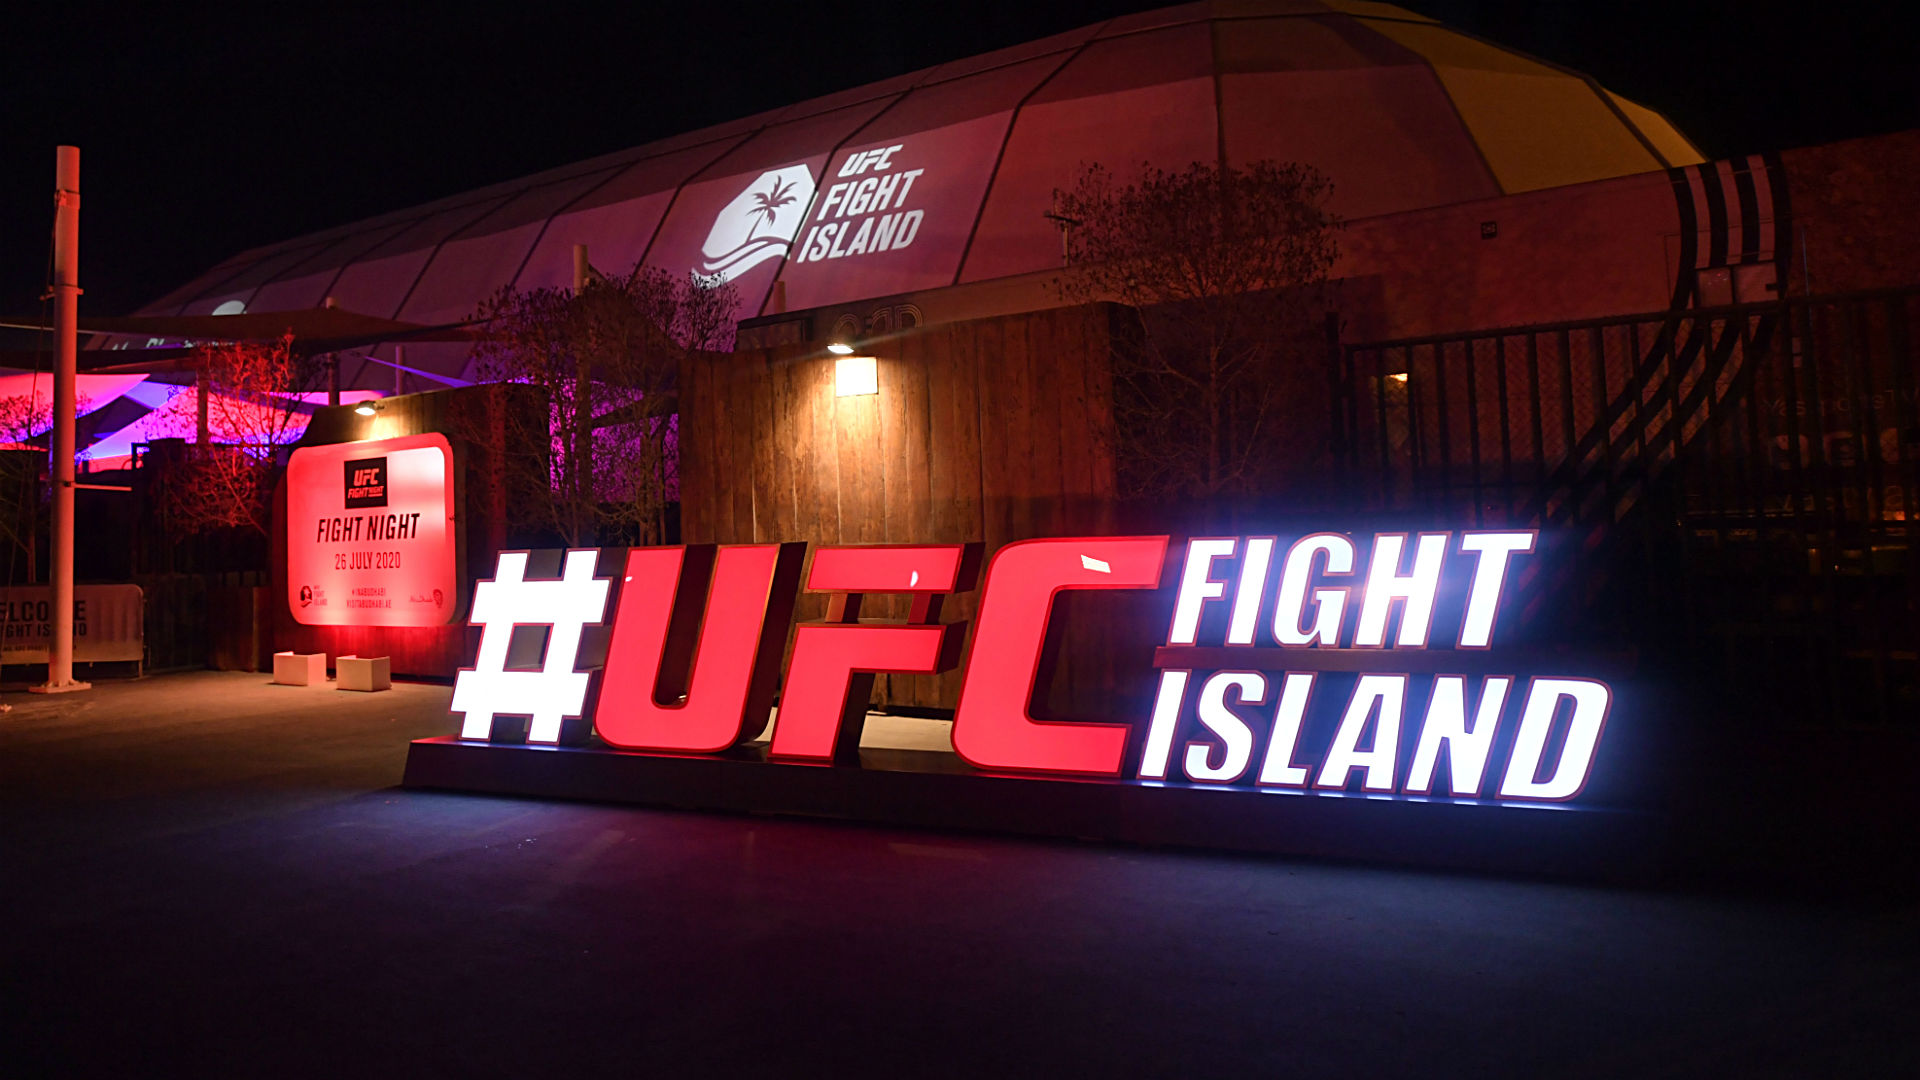 UFC 251 on Fight Island: Usman vs. Masvidal results, highlights from Abu Dhabi card